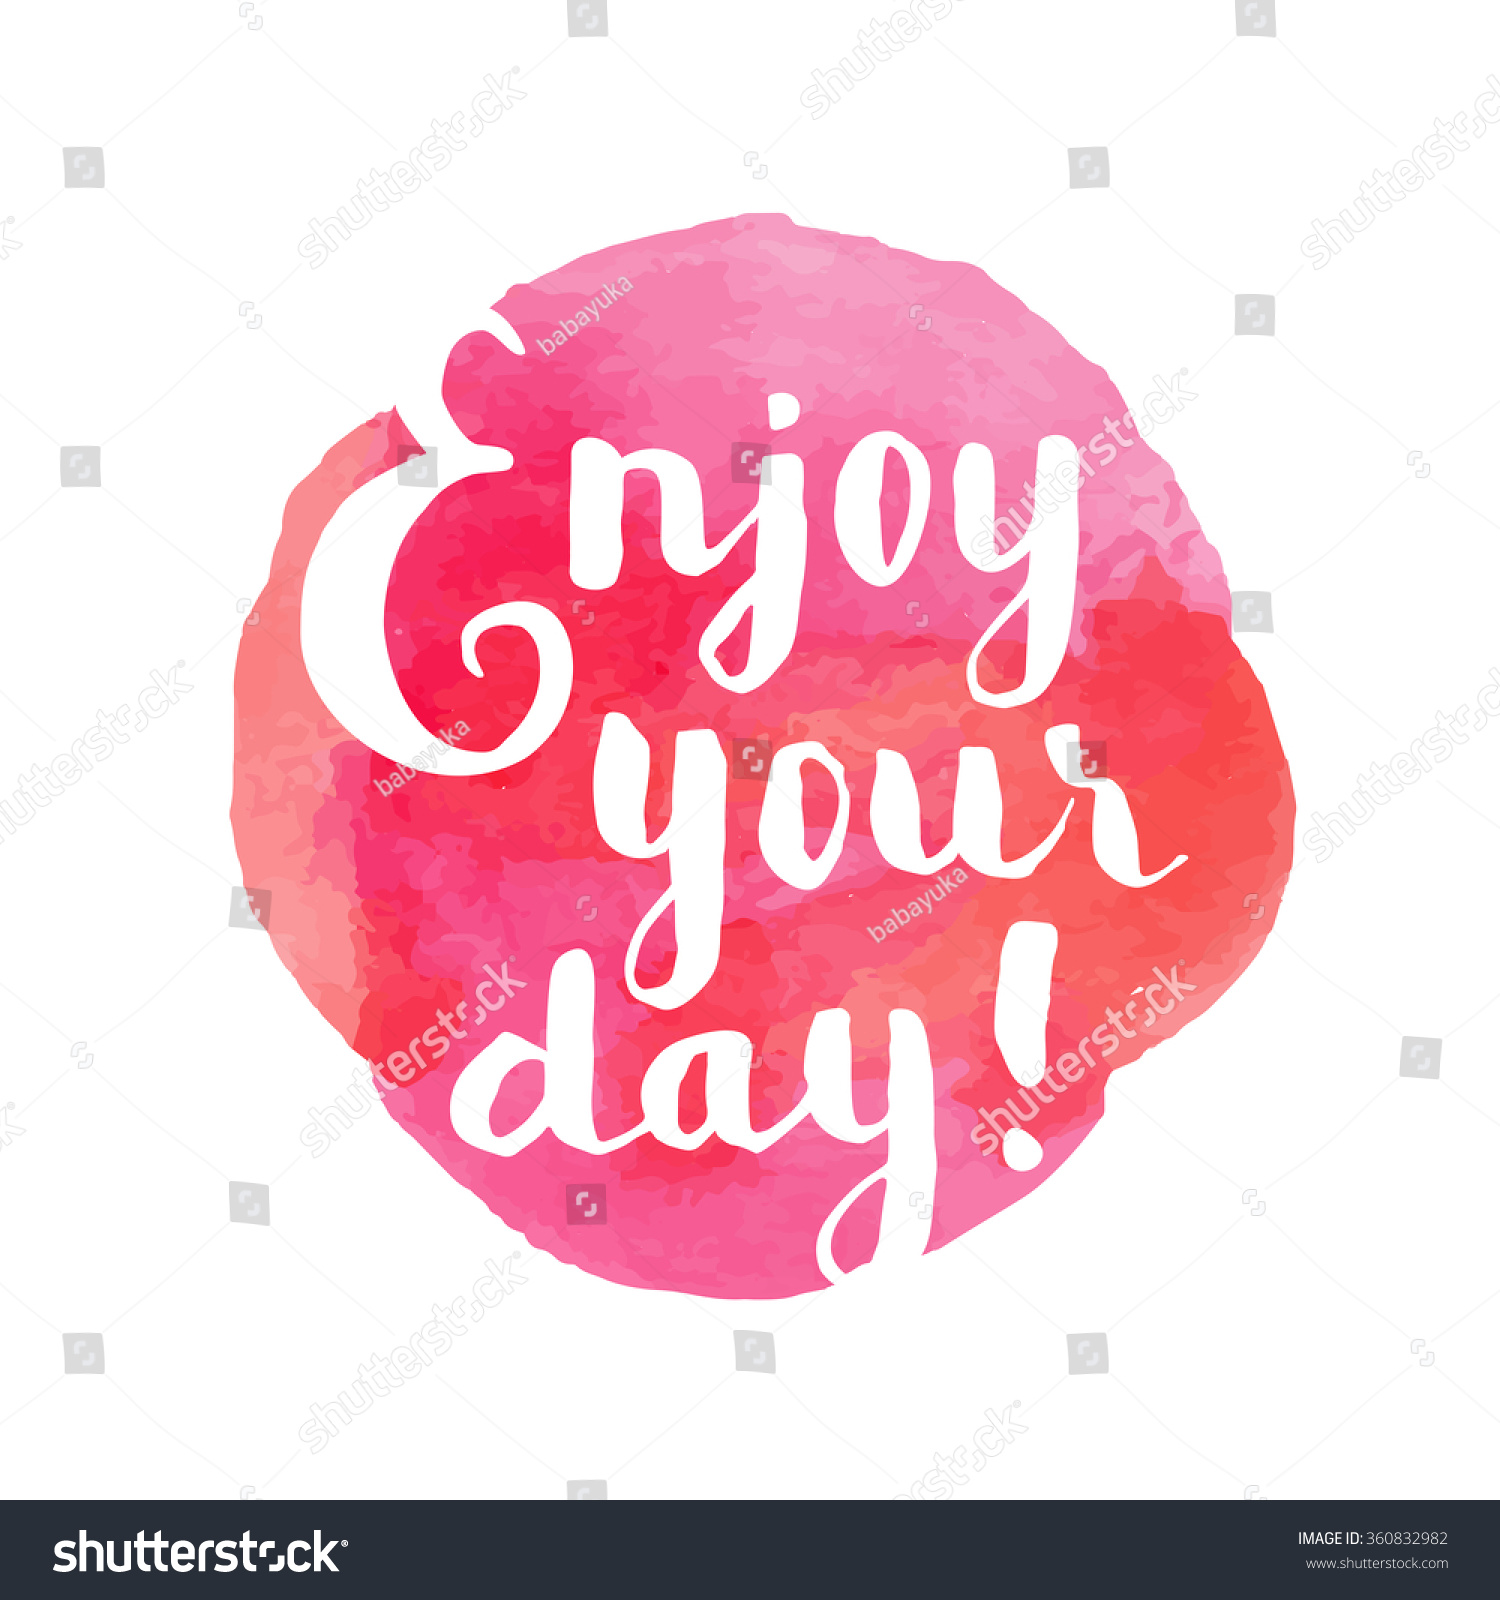 Enjoy your day inspirational quote hand stock vector for Quotes on enjoying the day